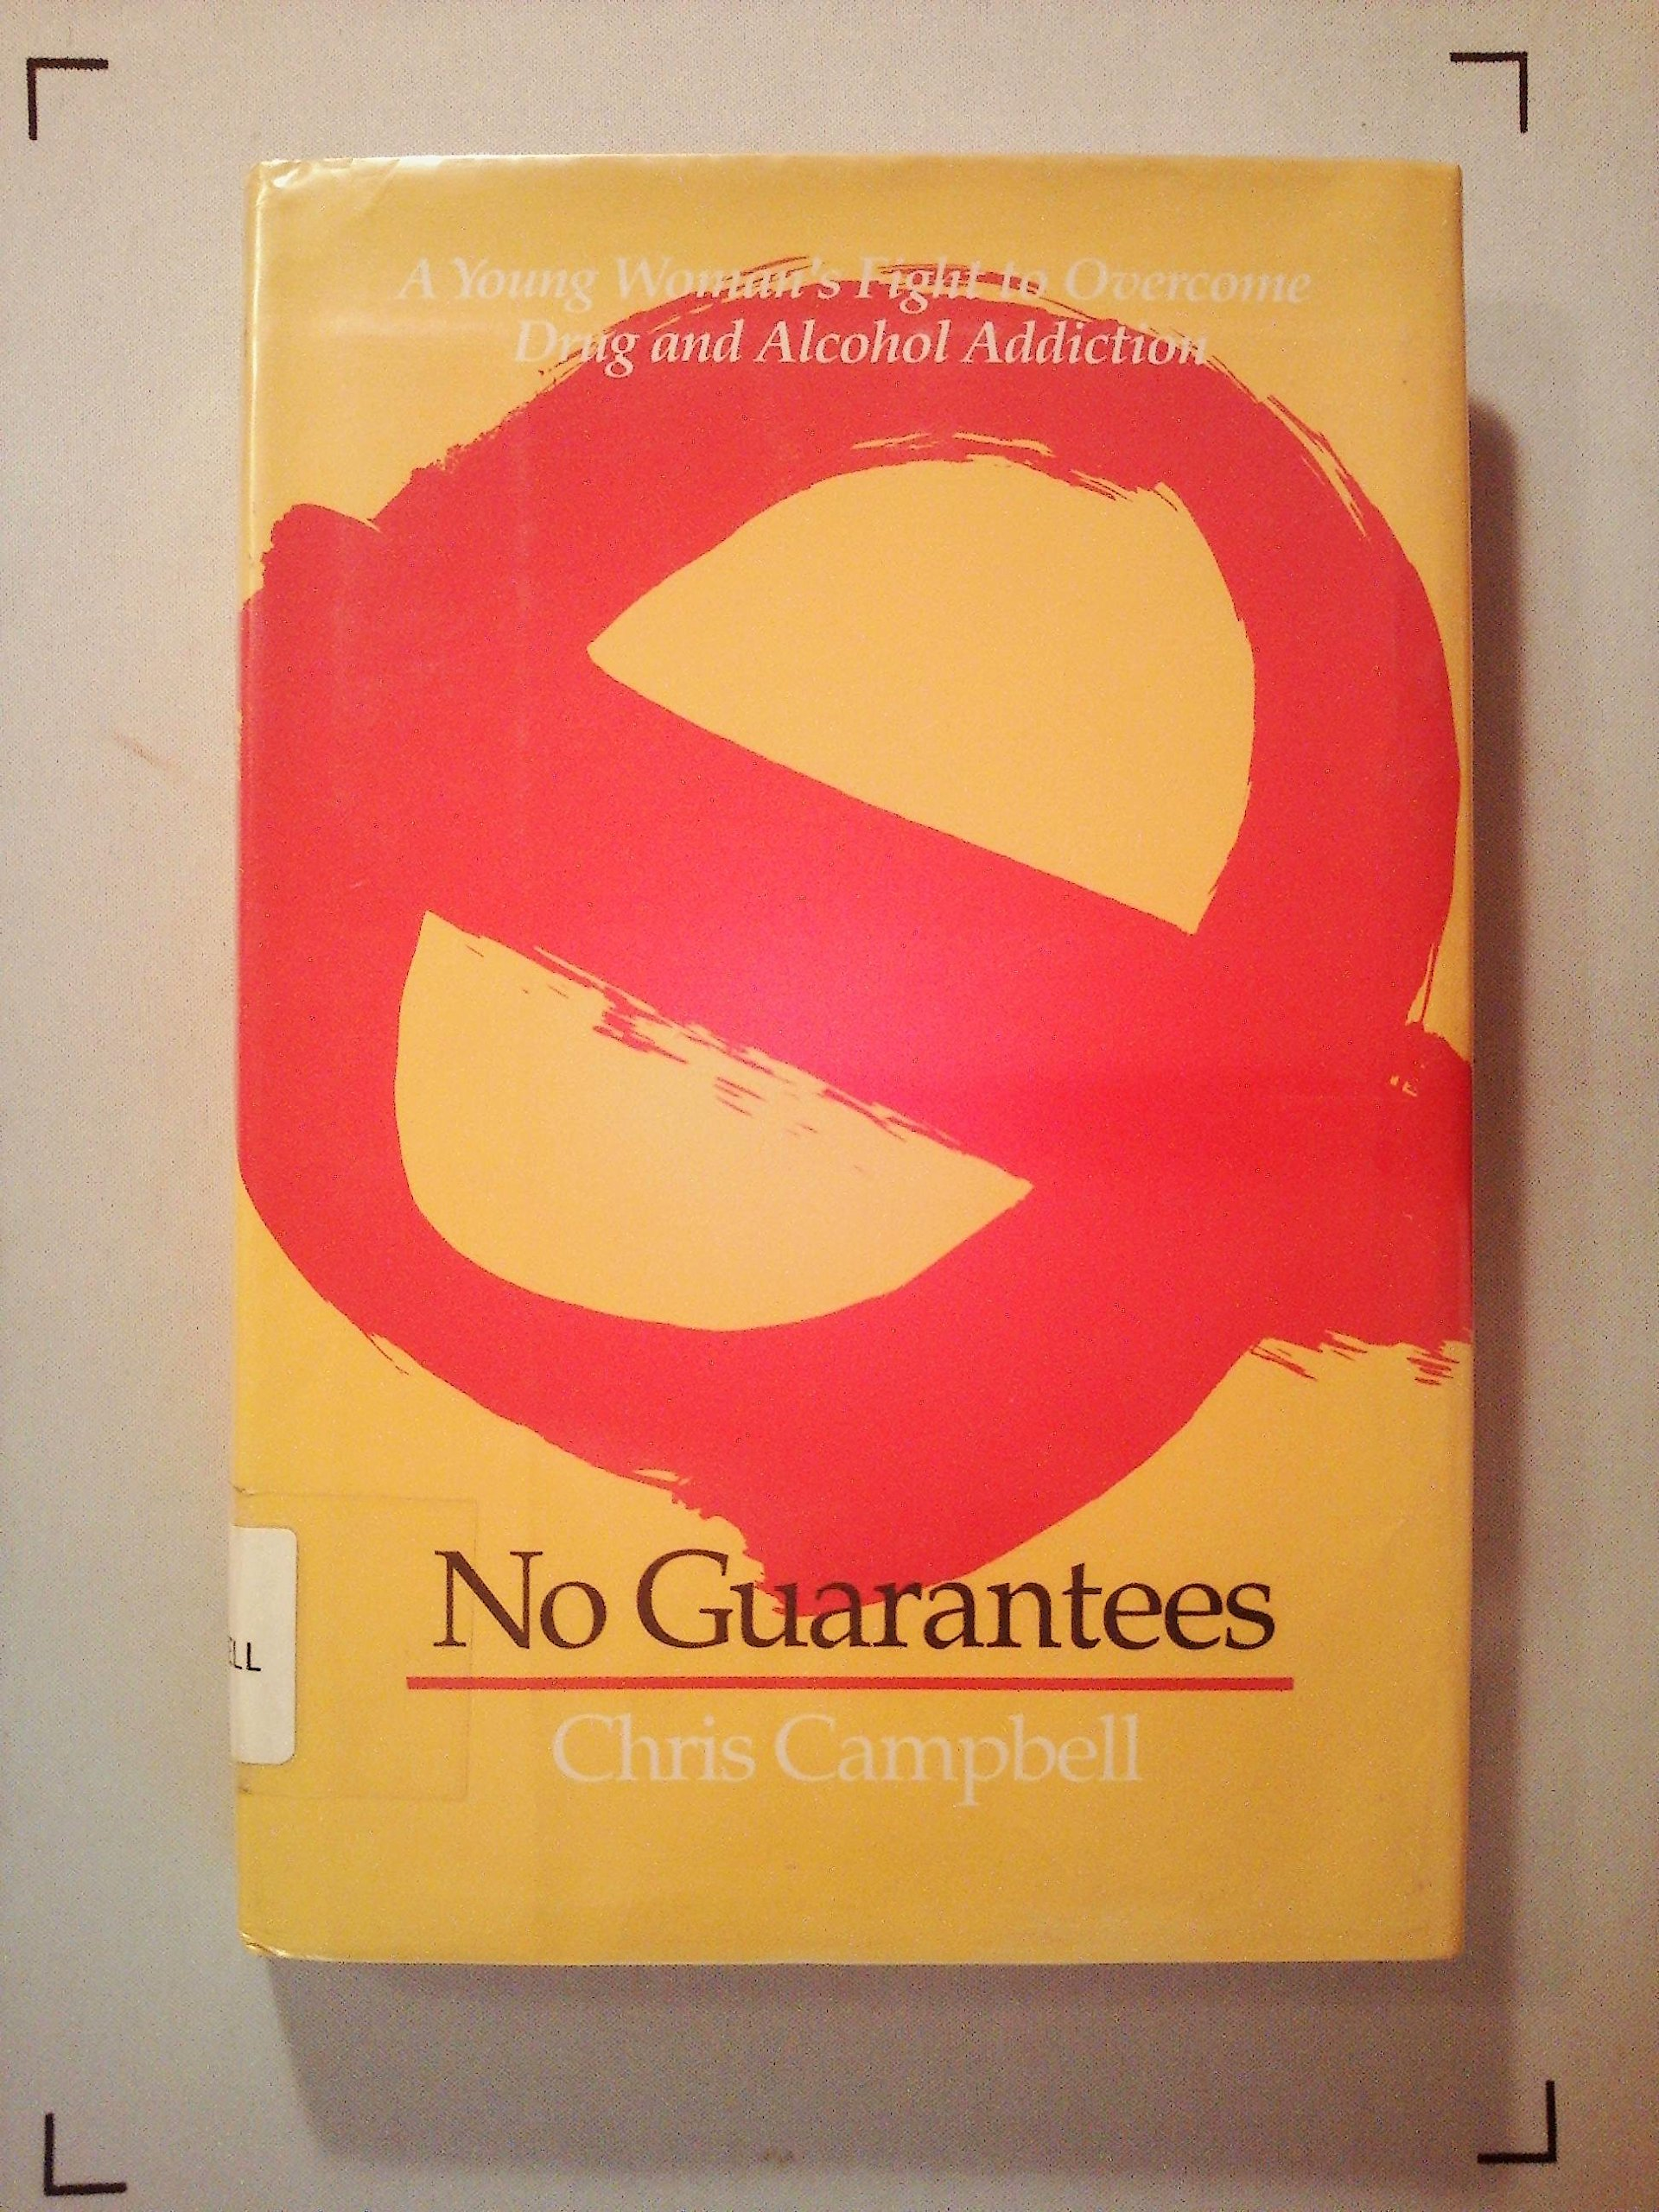 No Guarantees: A Young Woman's Fight to Overcome Drug and Alcohol Addiction